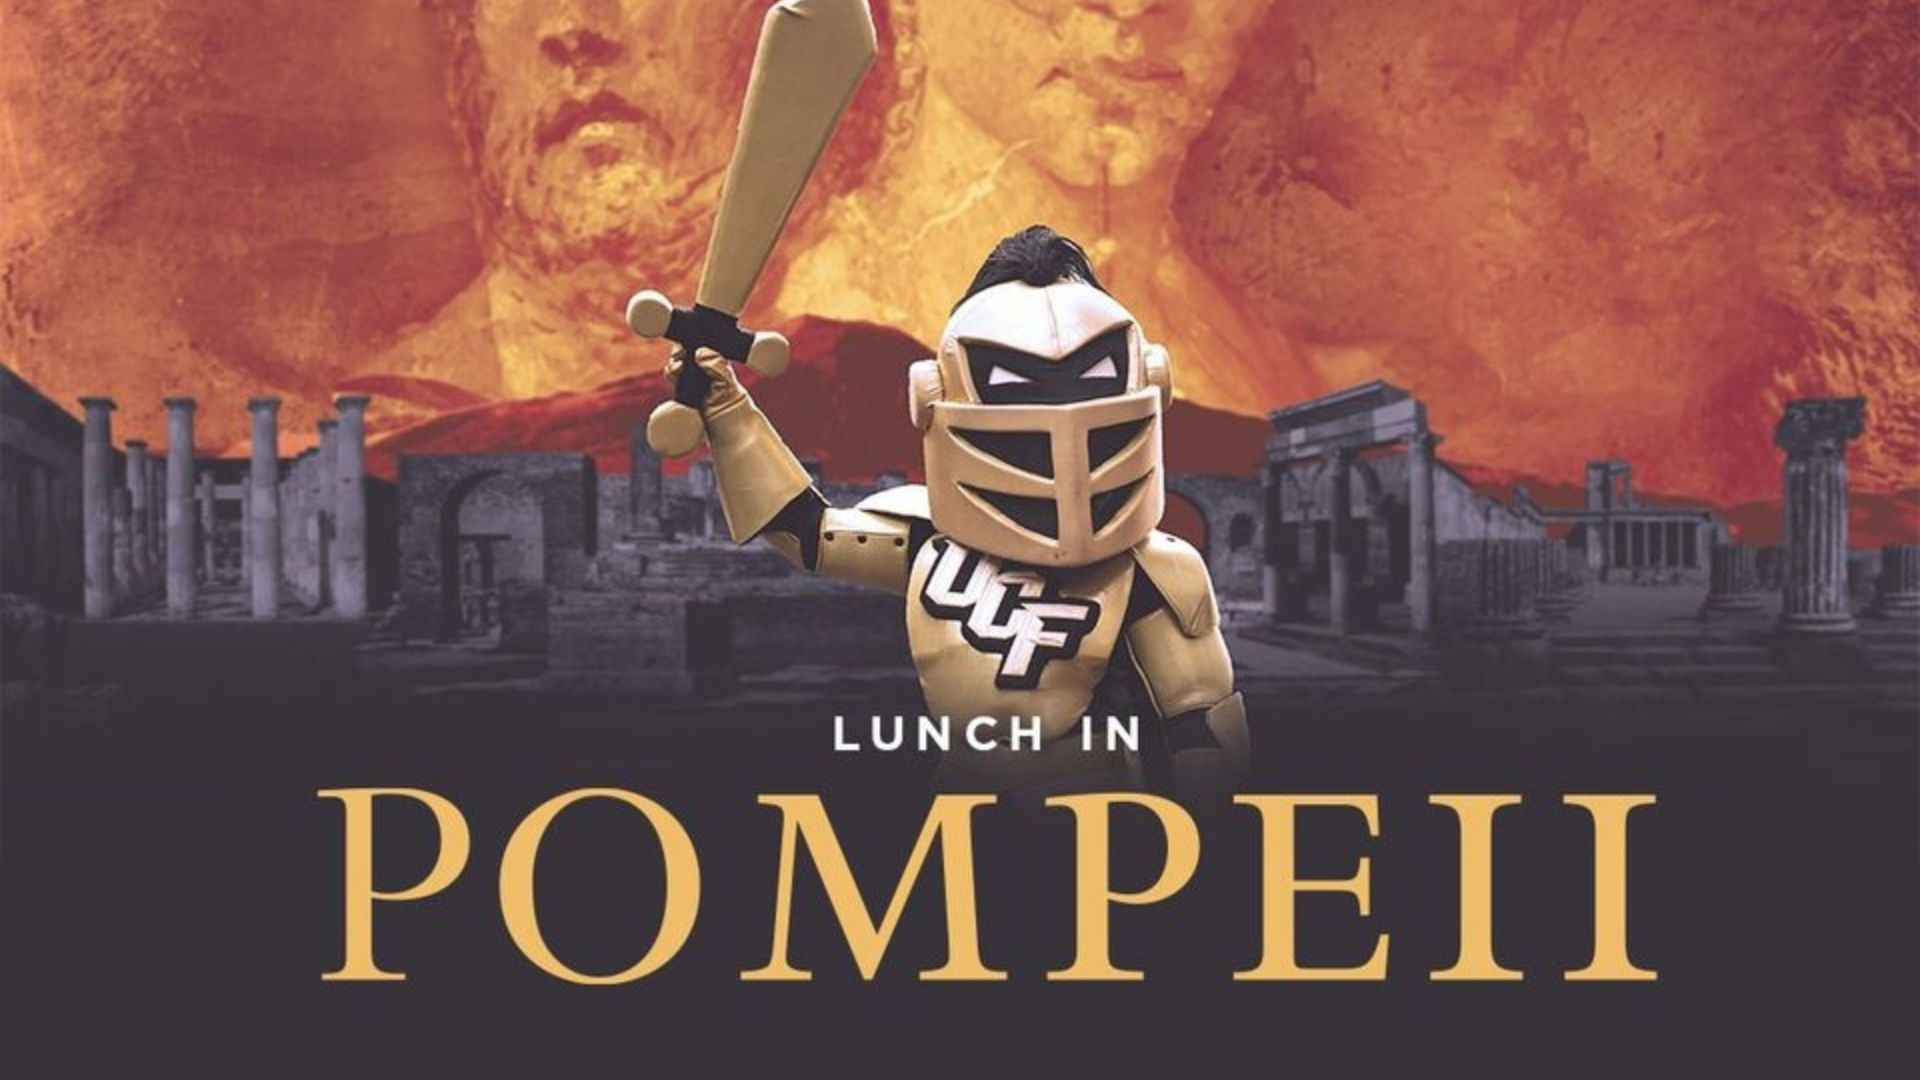 Lunch in Pompeii